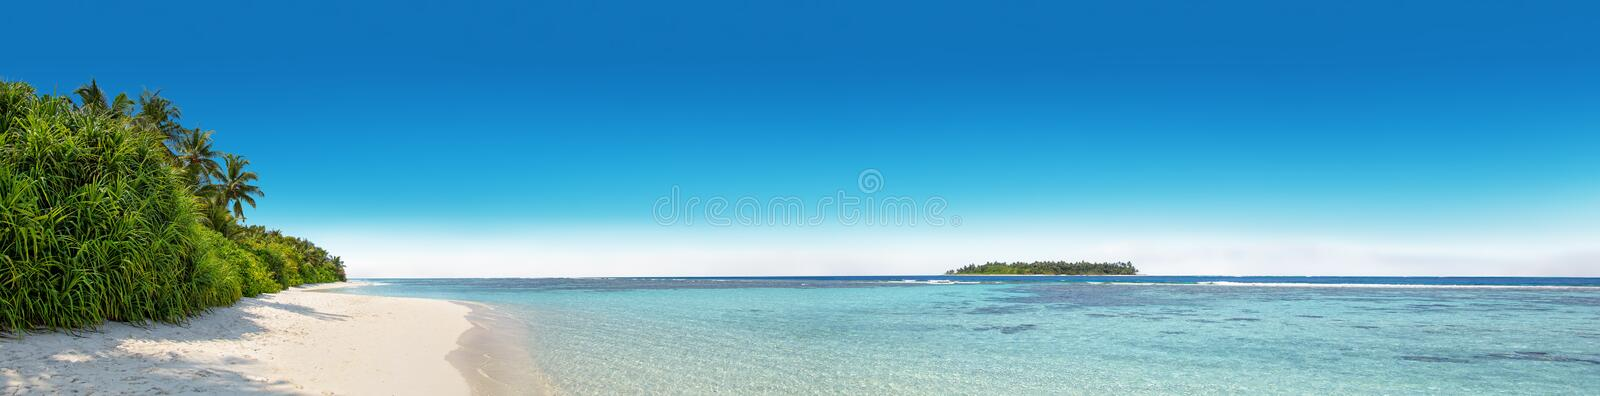 Panorama of tropical island with coconut palm trees royalty free stock images